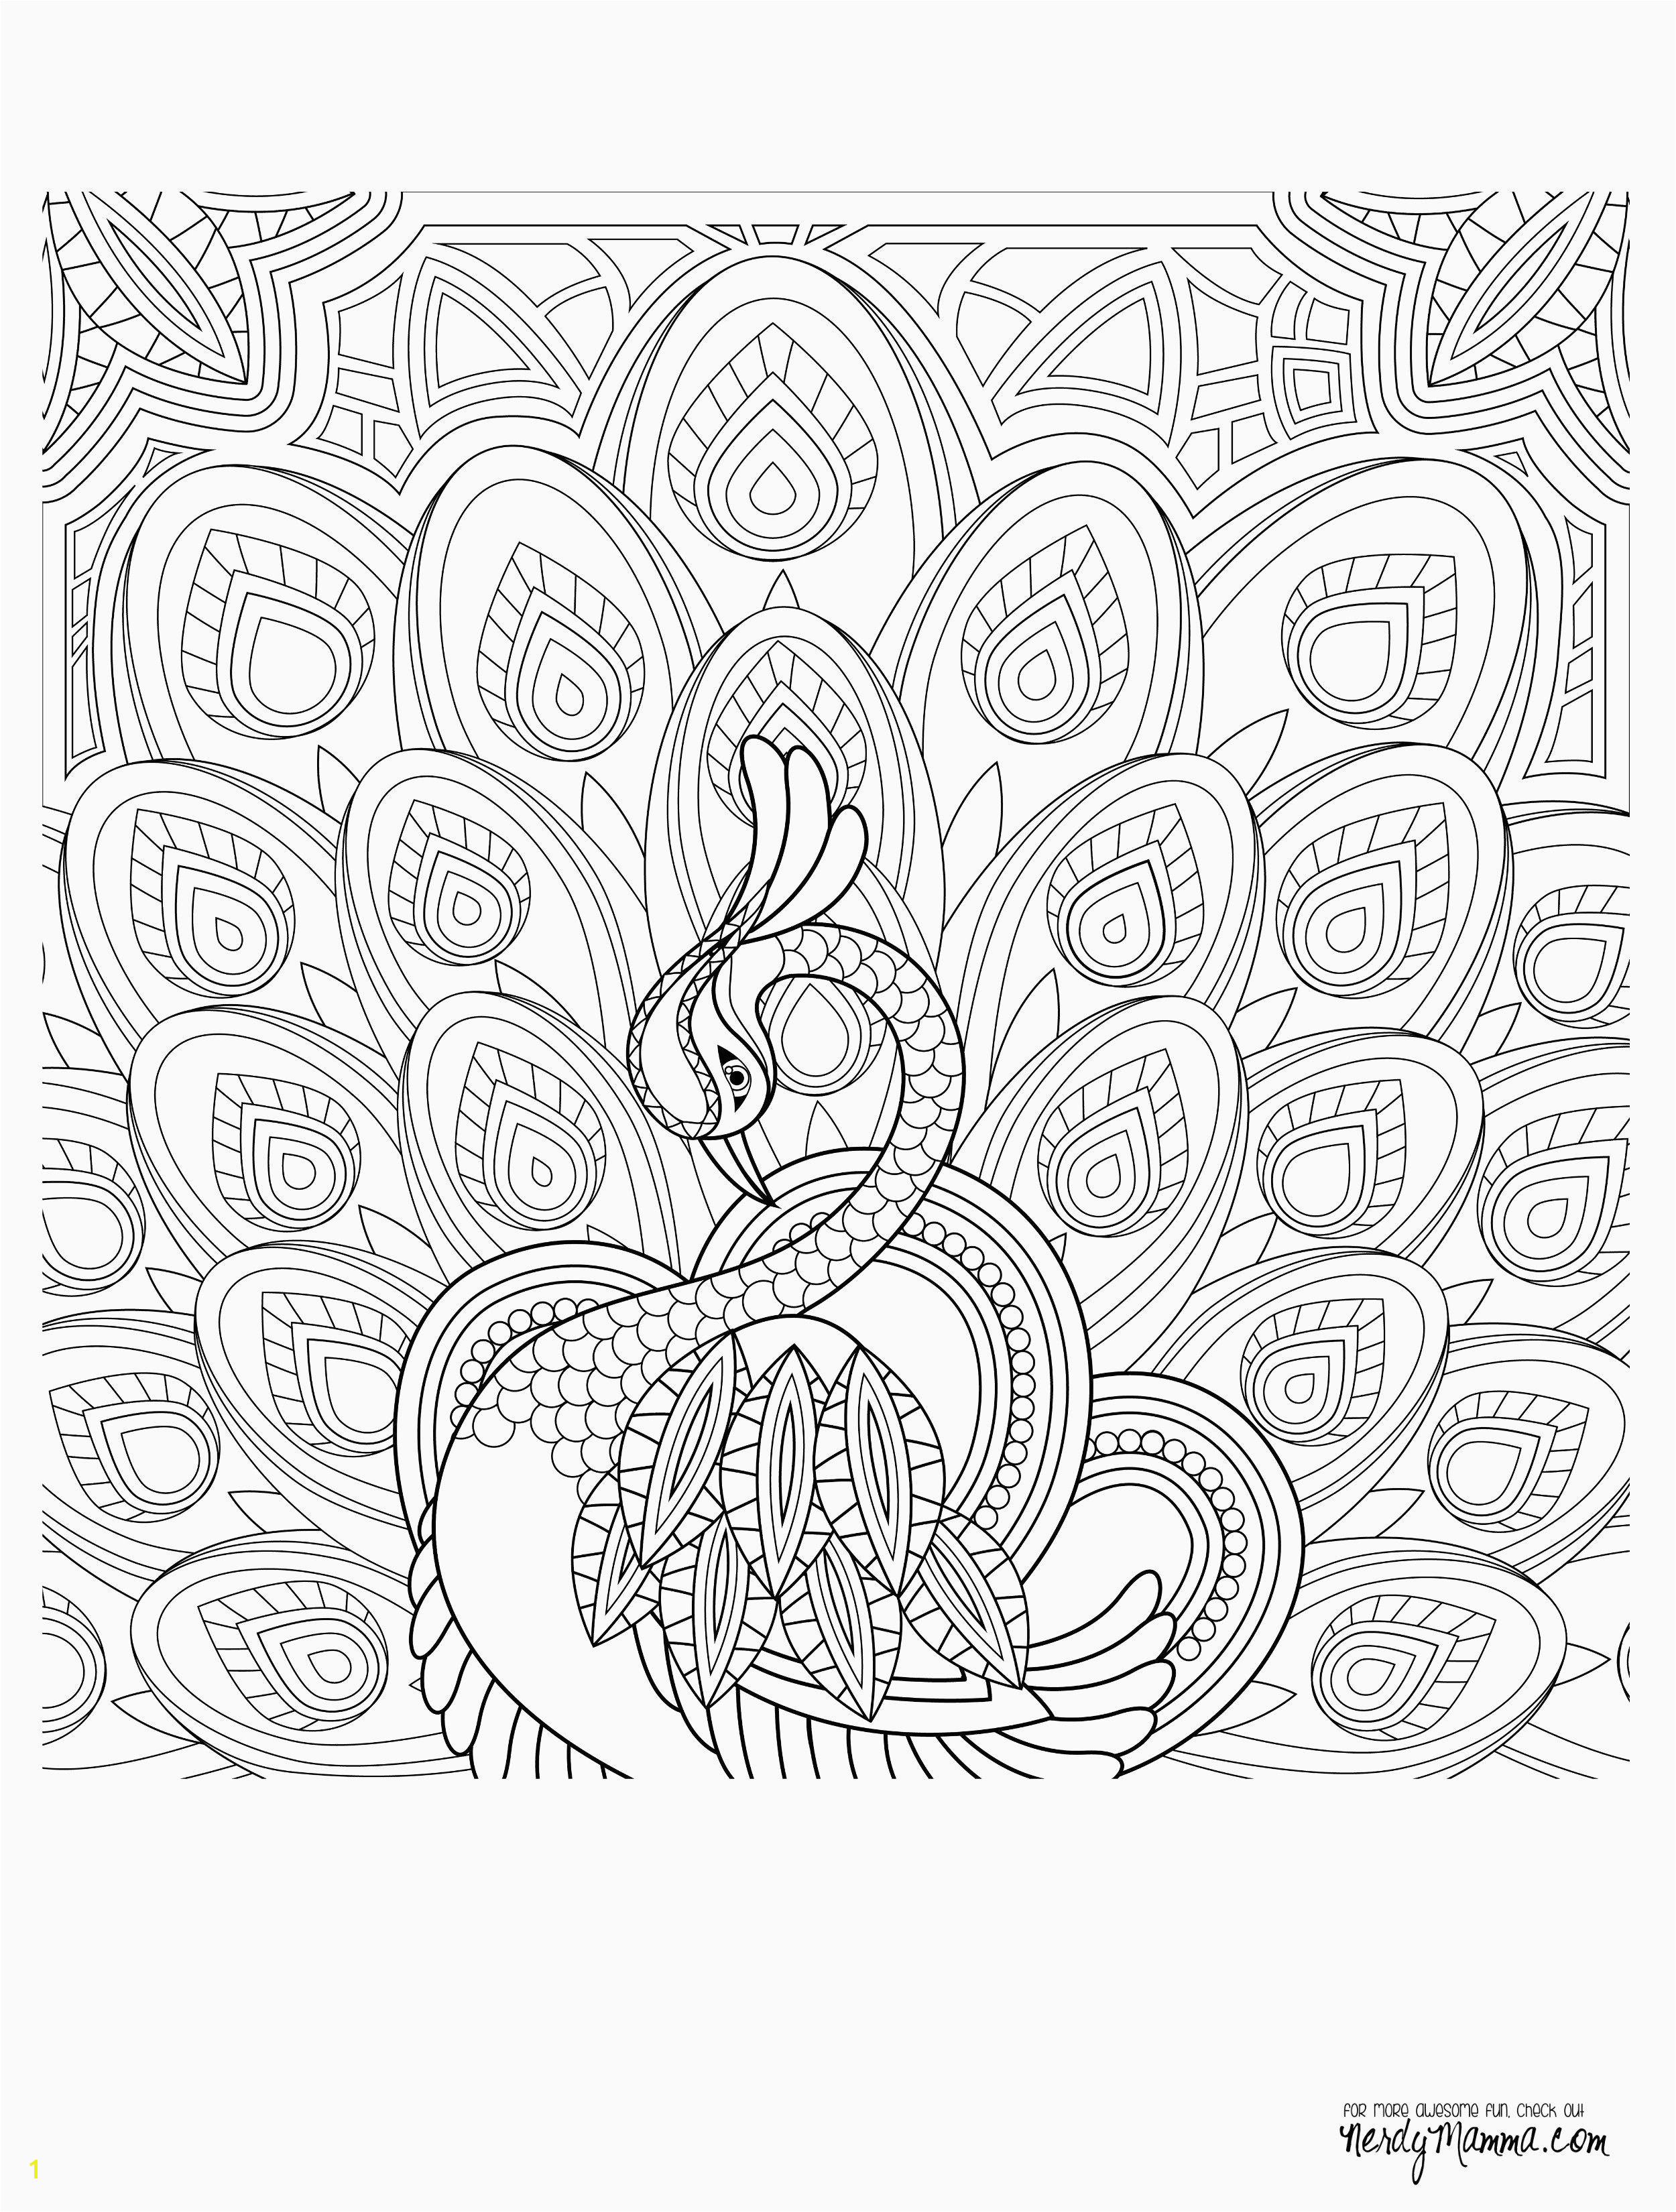 Flower Mandala Coloring Pages Printable Free Printable Coloring Pages for Adults Best Awesome Coloring